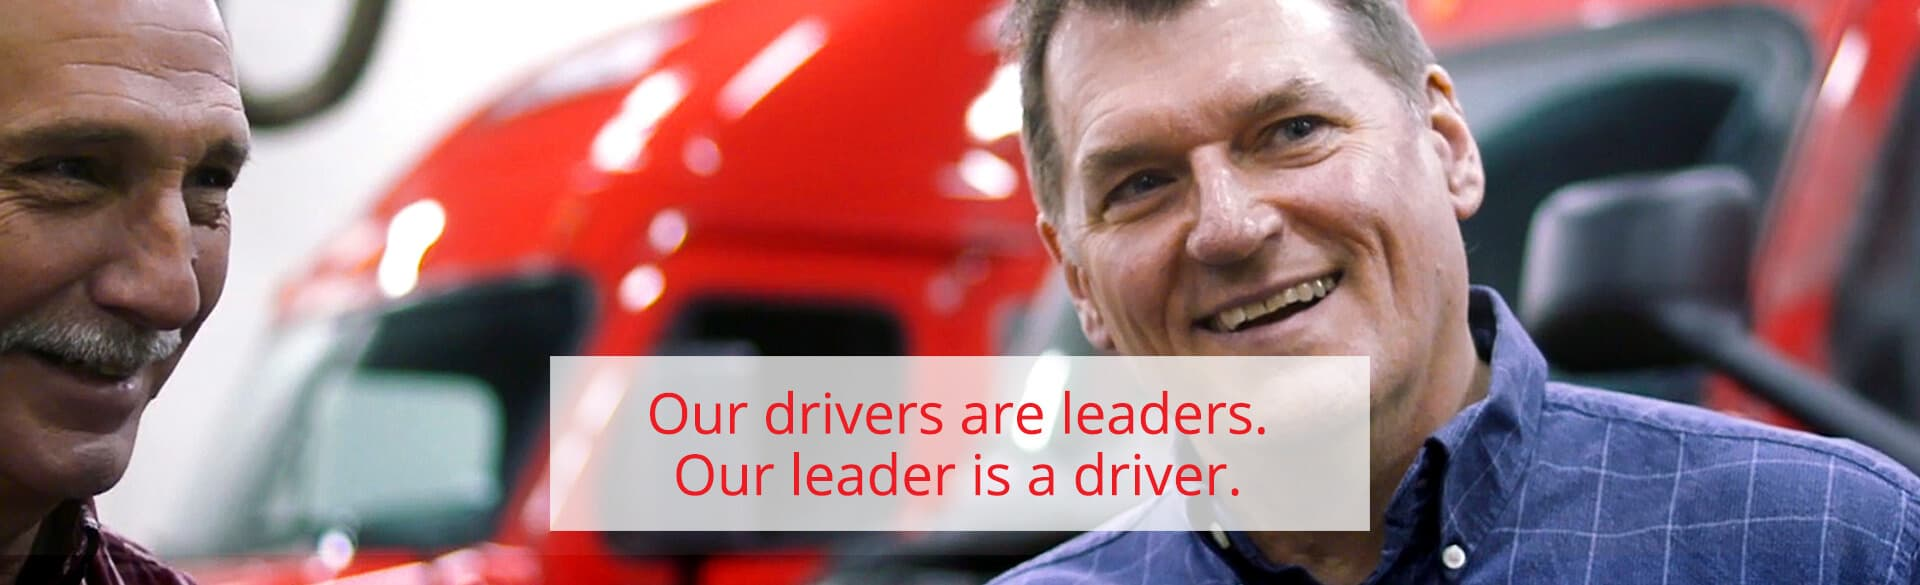 Our drivers are leaders. Our leader is a driver. Teaser